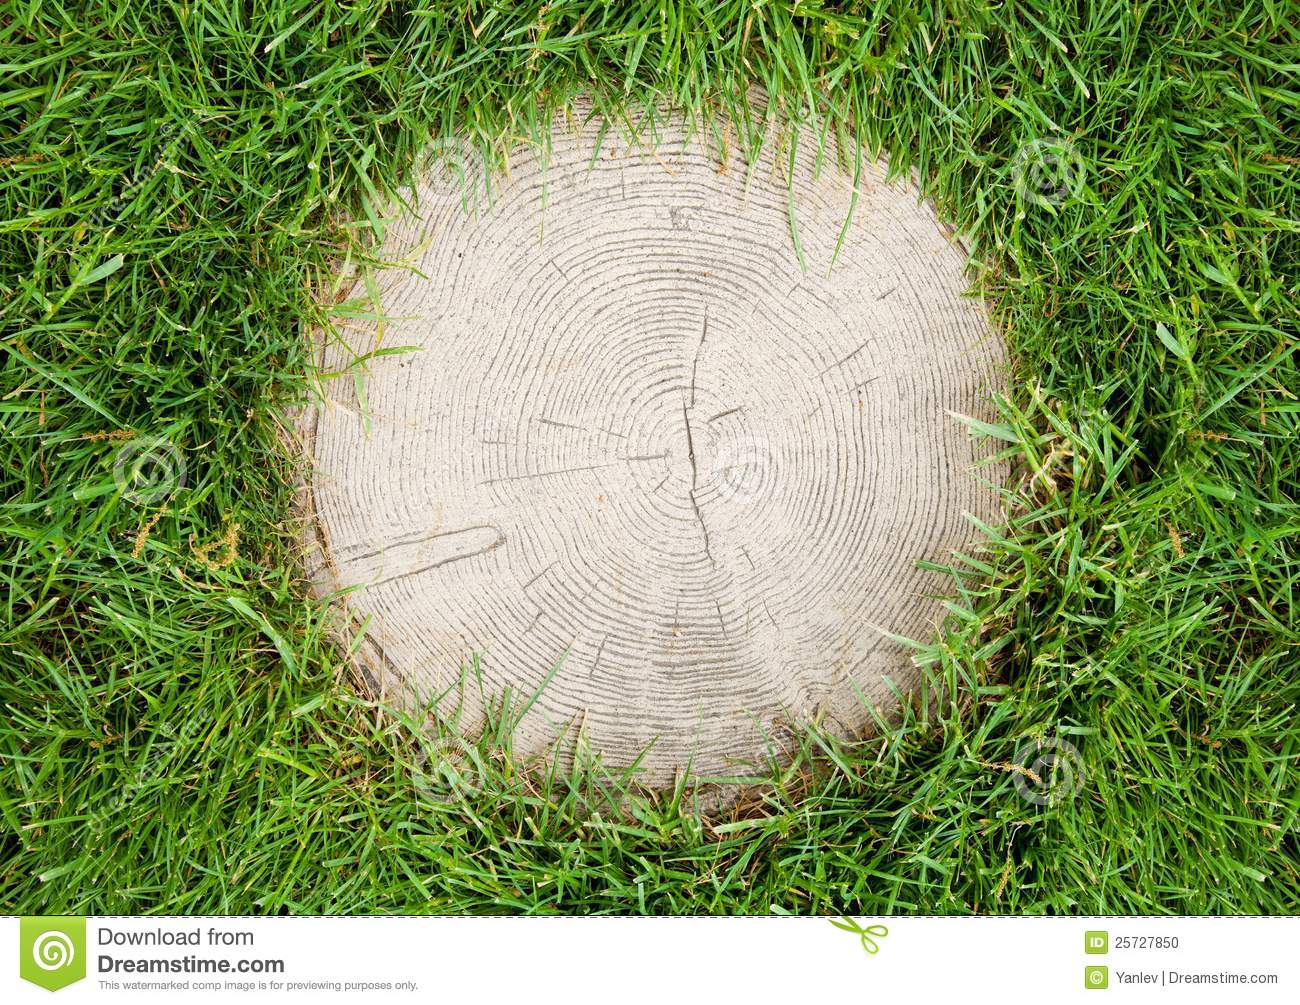 Tree stump surrounded by grass